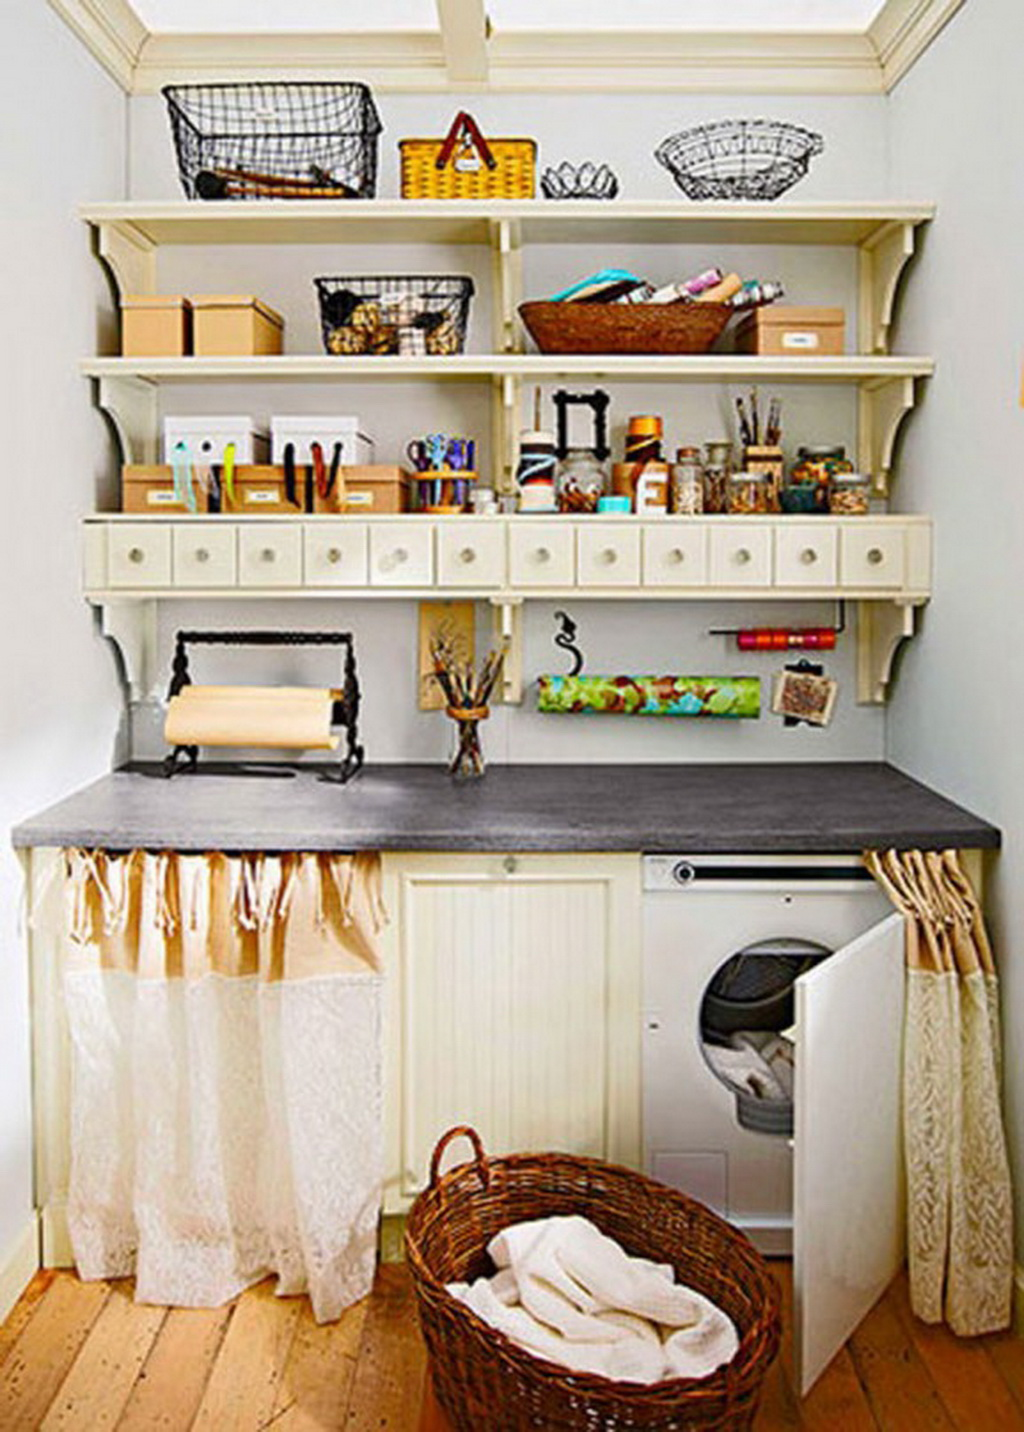 15 Tips to Creating a Laundry Room that's both Charming ... on Laundry Room Decor Ideas  id=86270